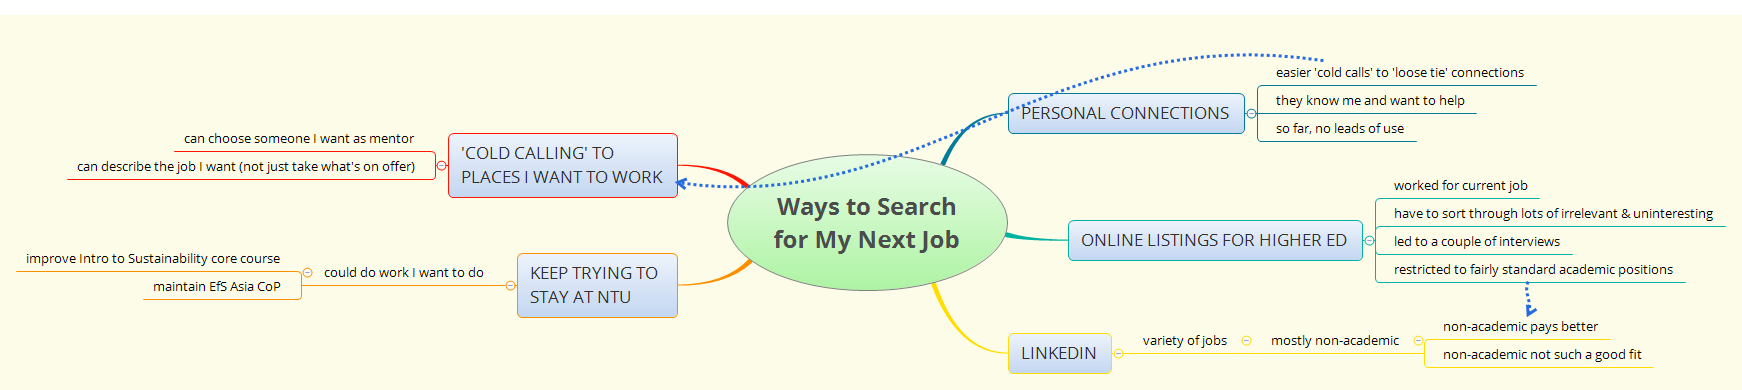 Ways to Search for My Next Job